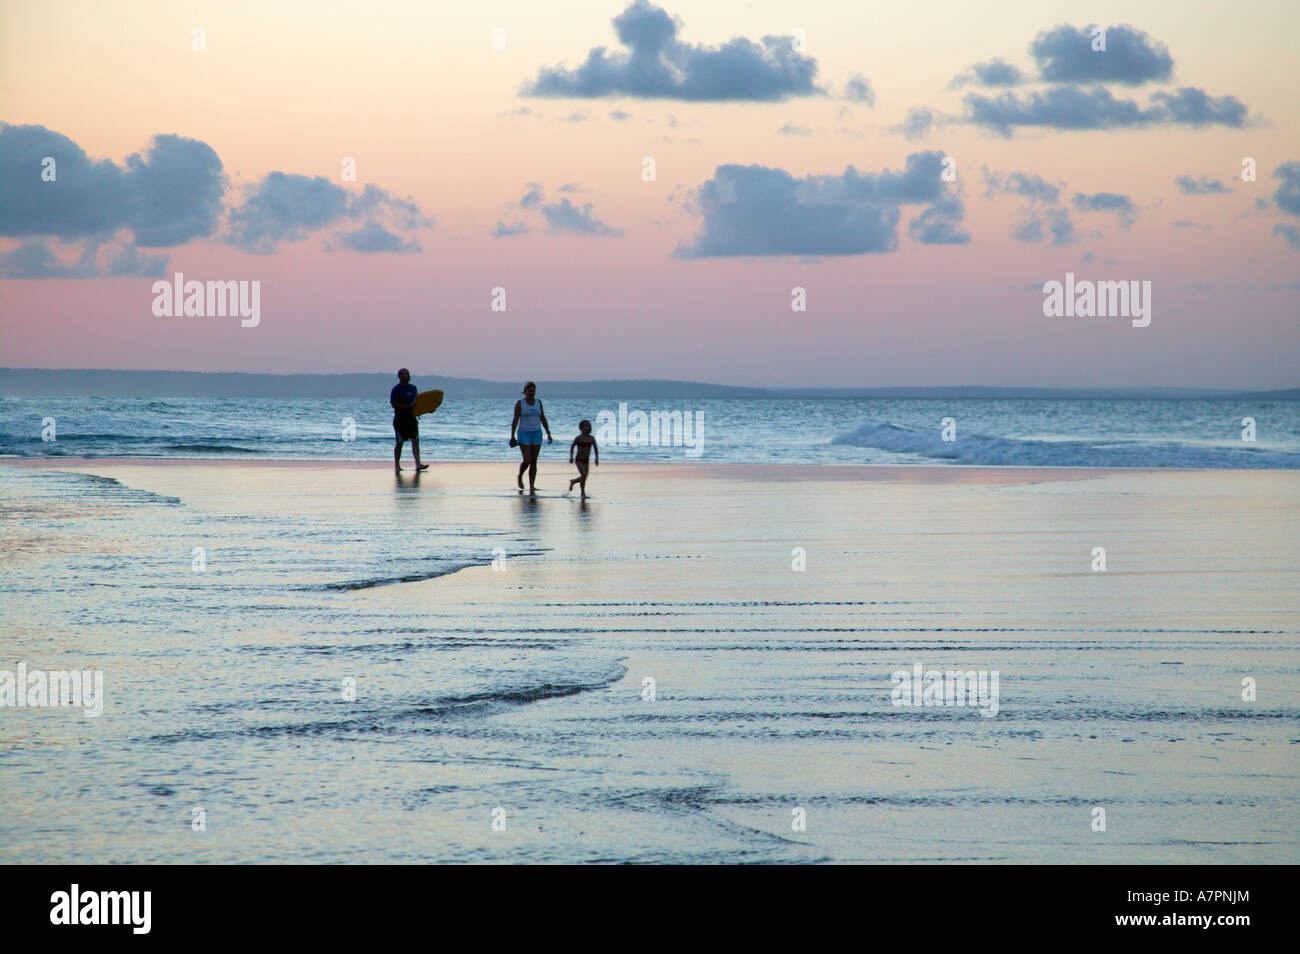 A family walking on the beach in Mozambique coast at dusk Barra Mozambique - Stock Image